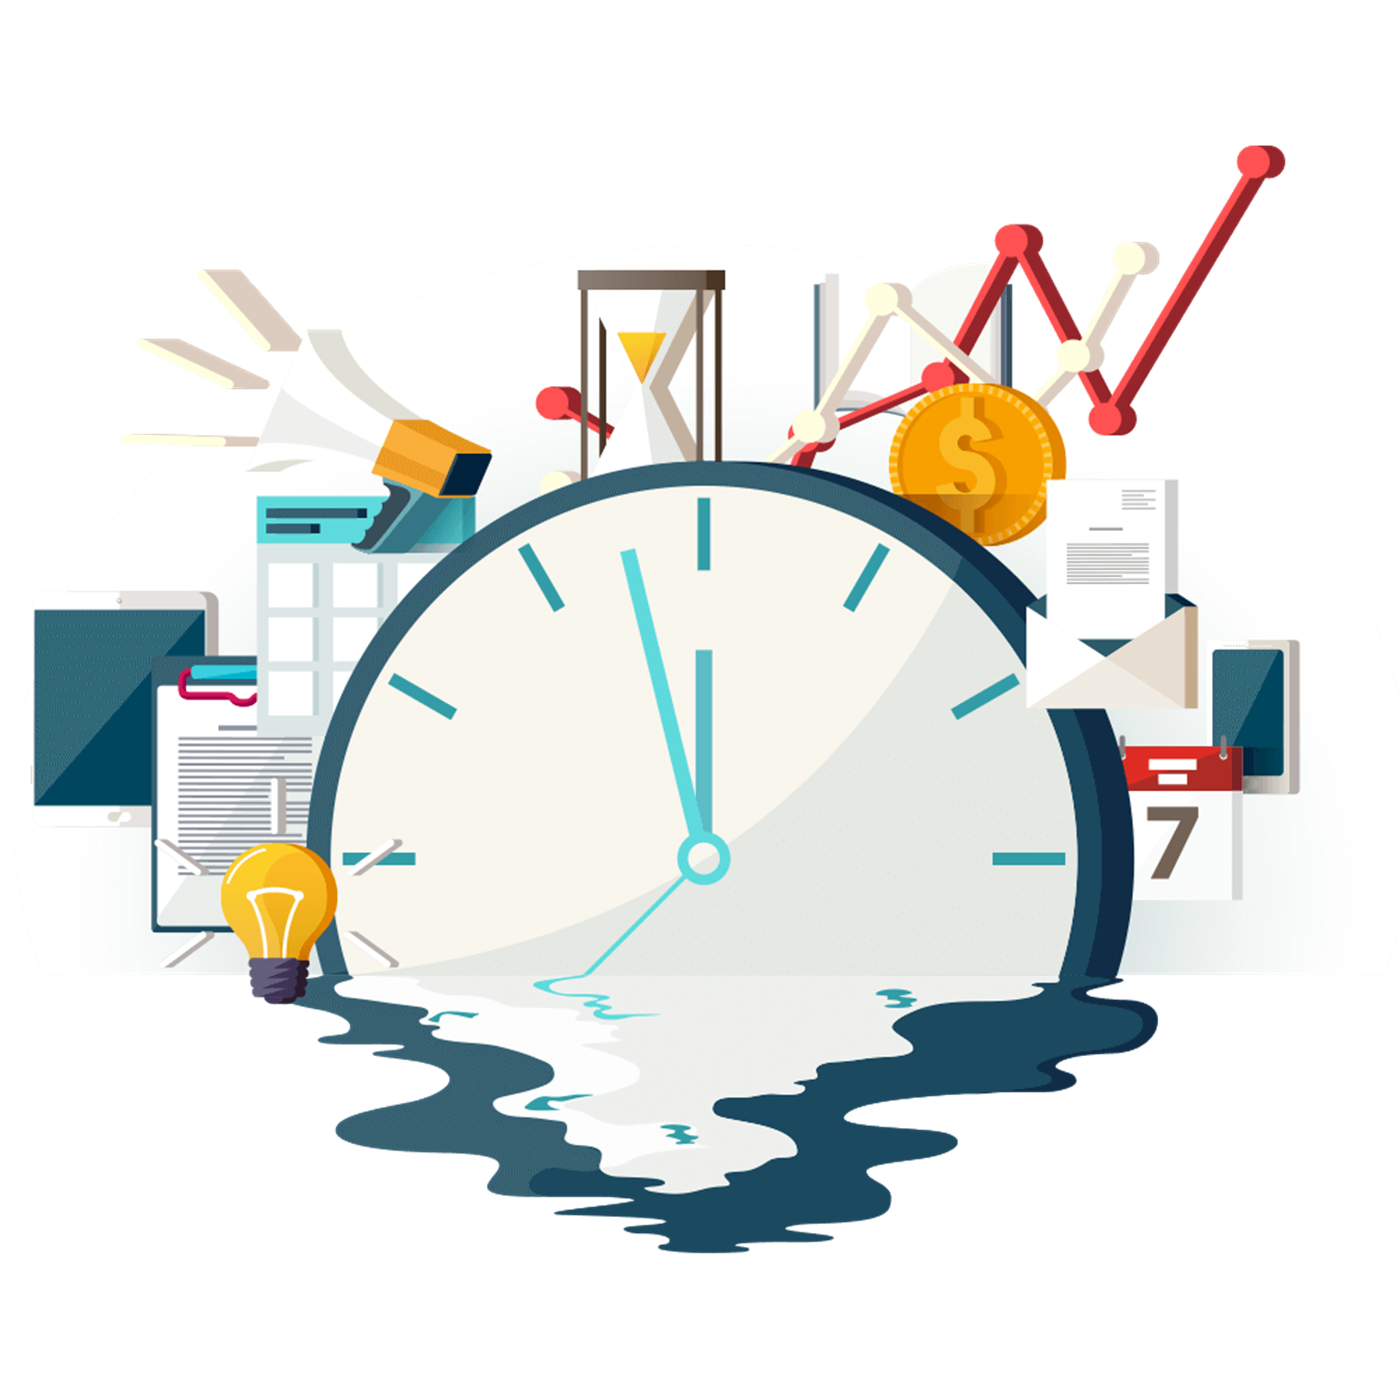 Line Management Technology Goal Time Free HQ Image PNG Image